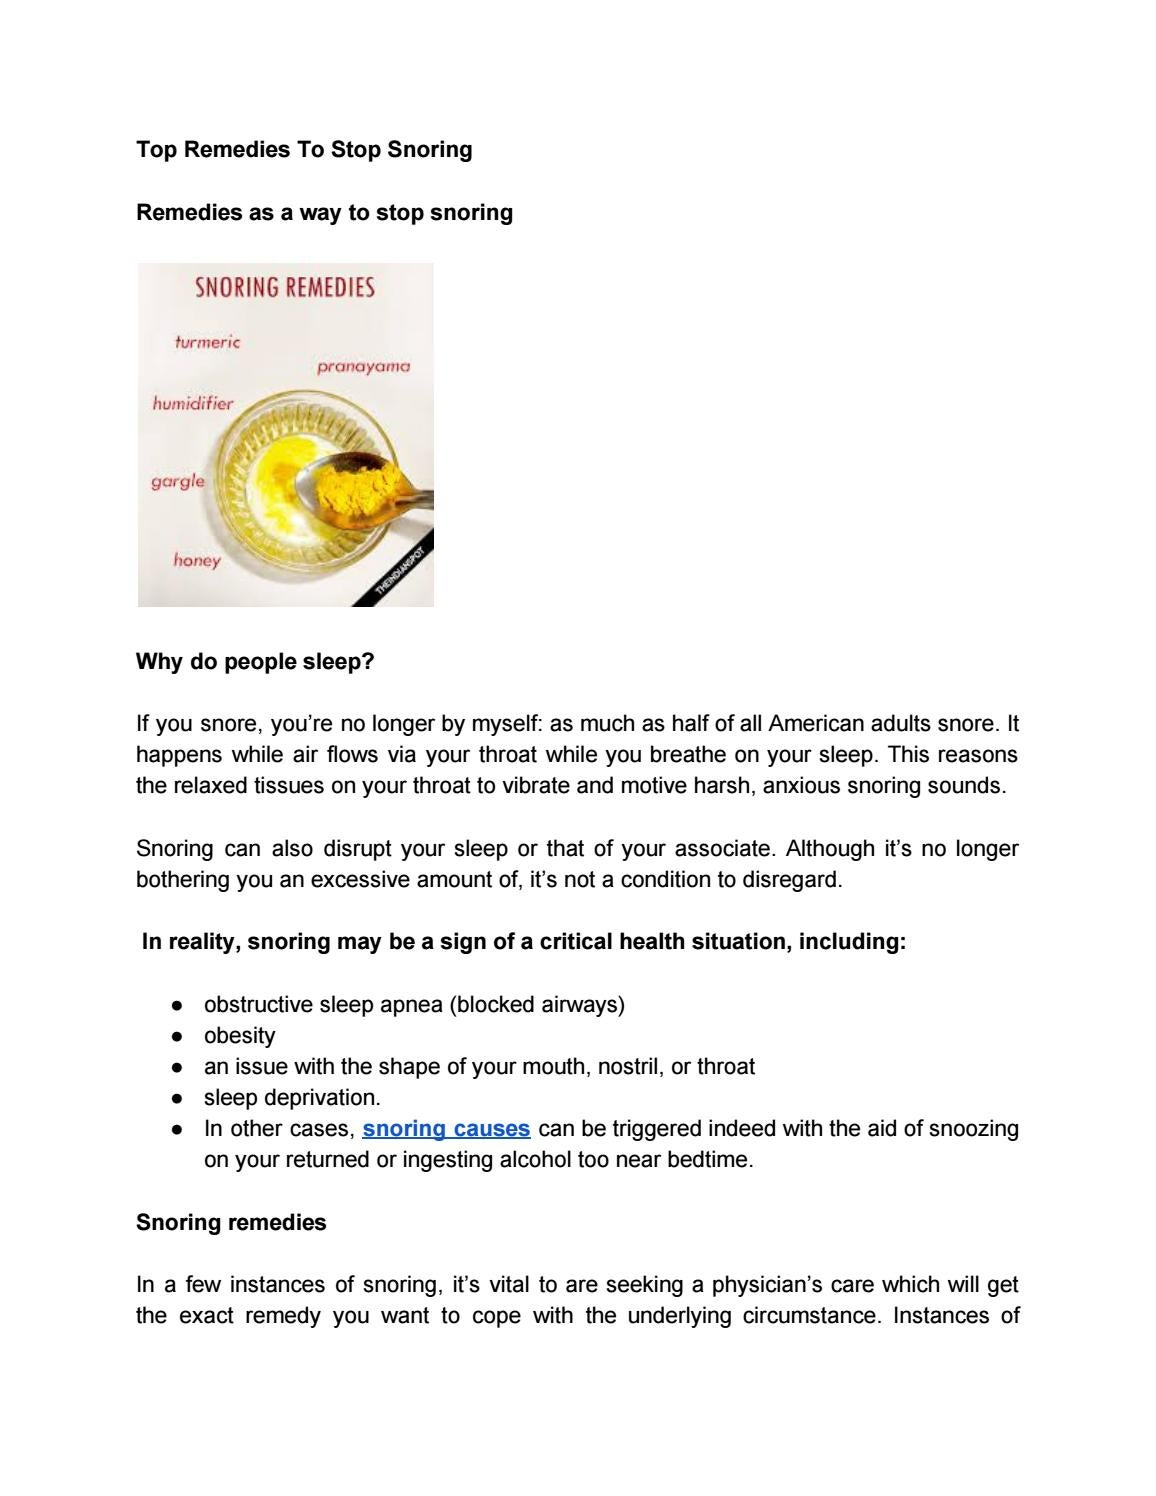 Top Remedies To Stop Snoring by stellalayla970 - issuu